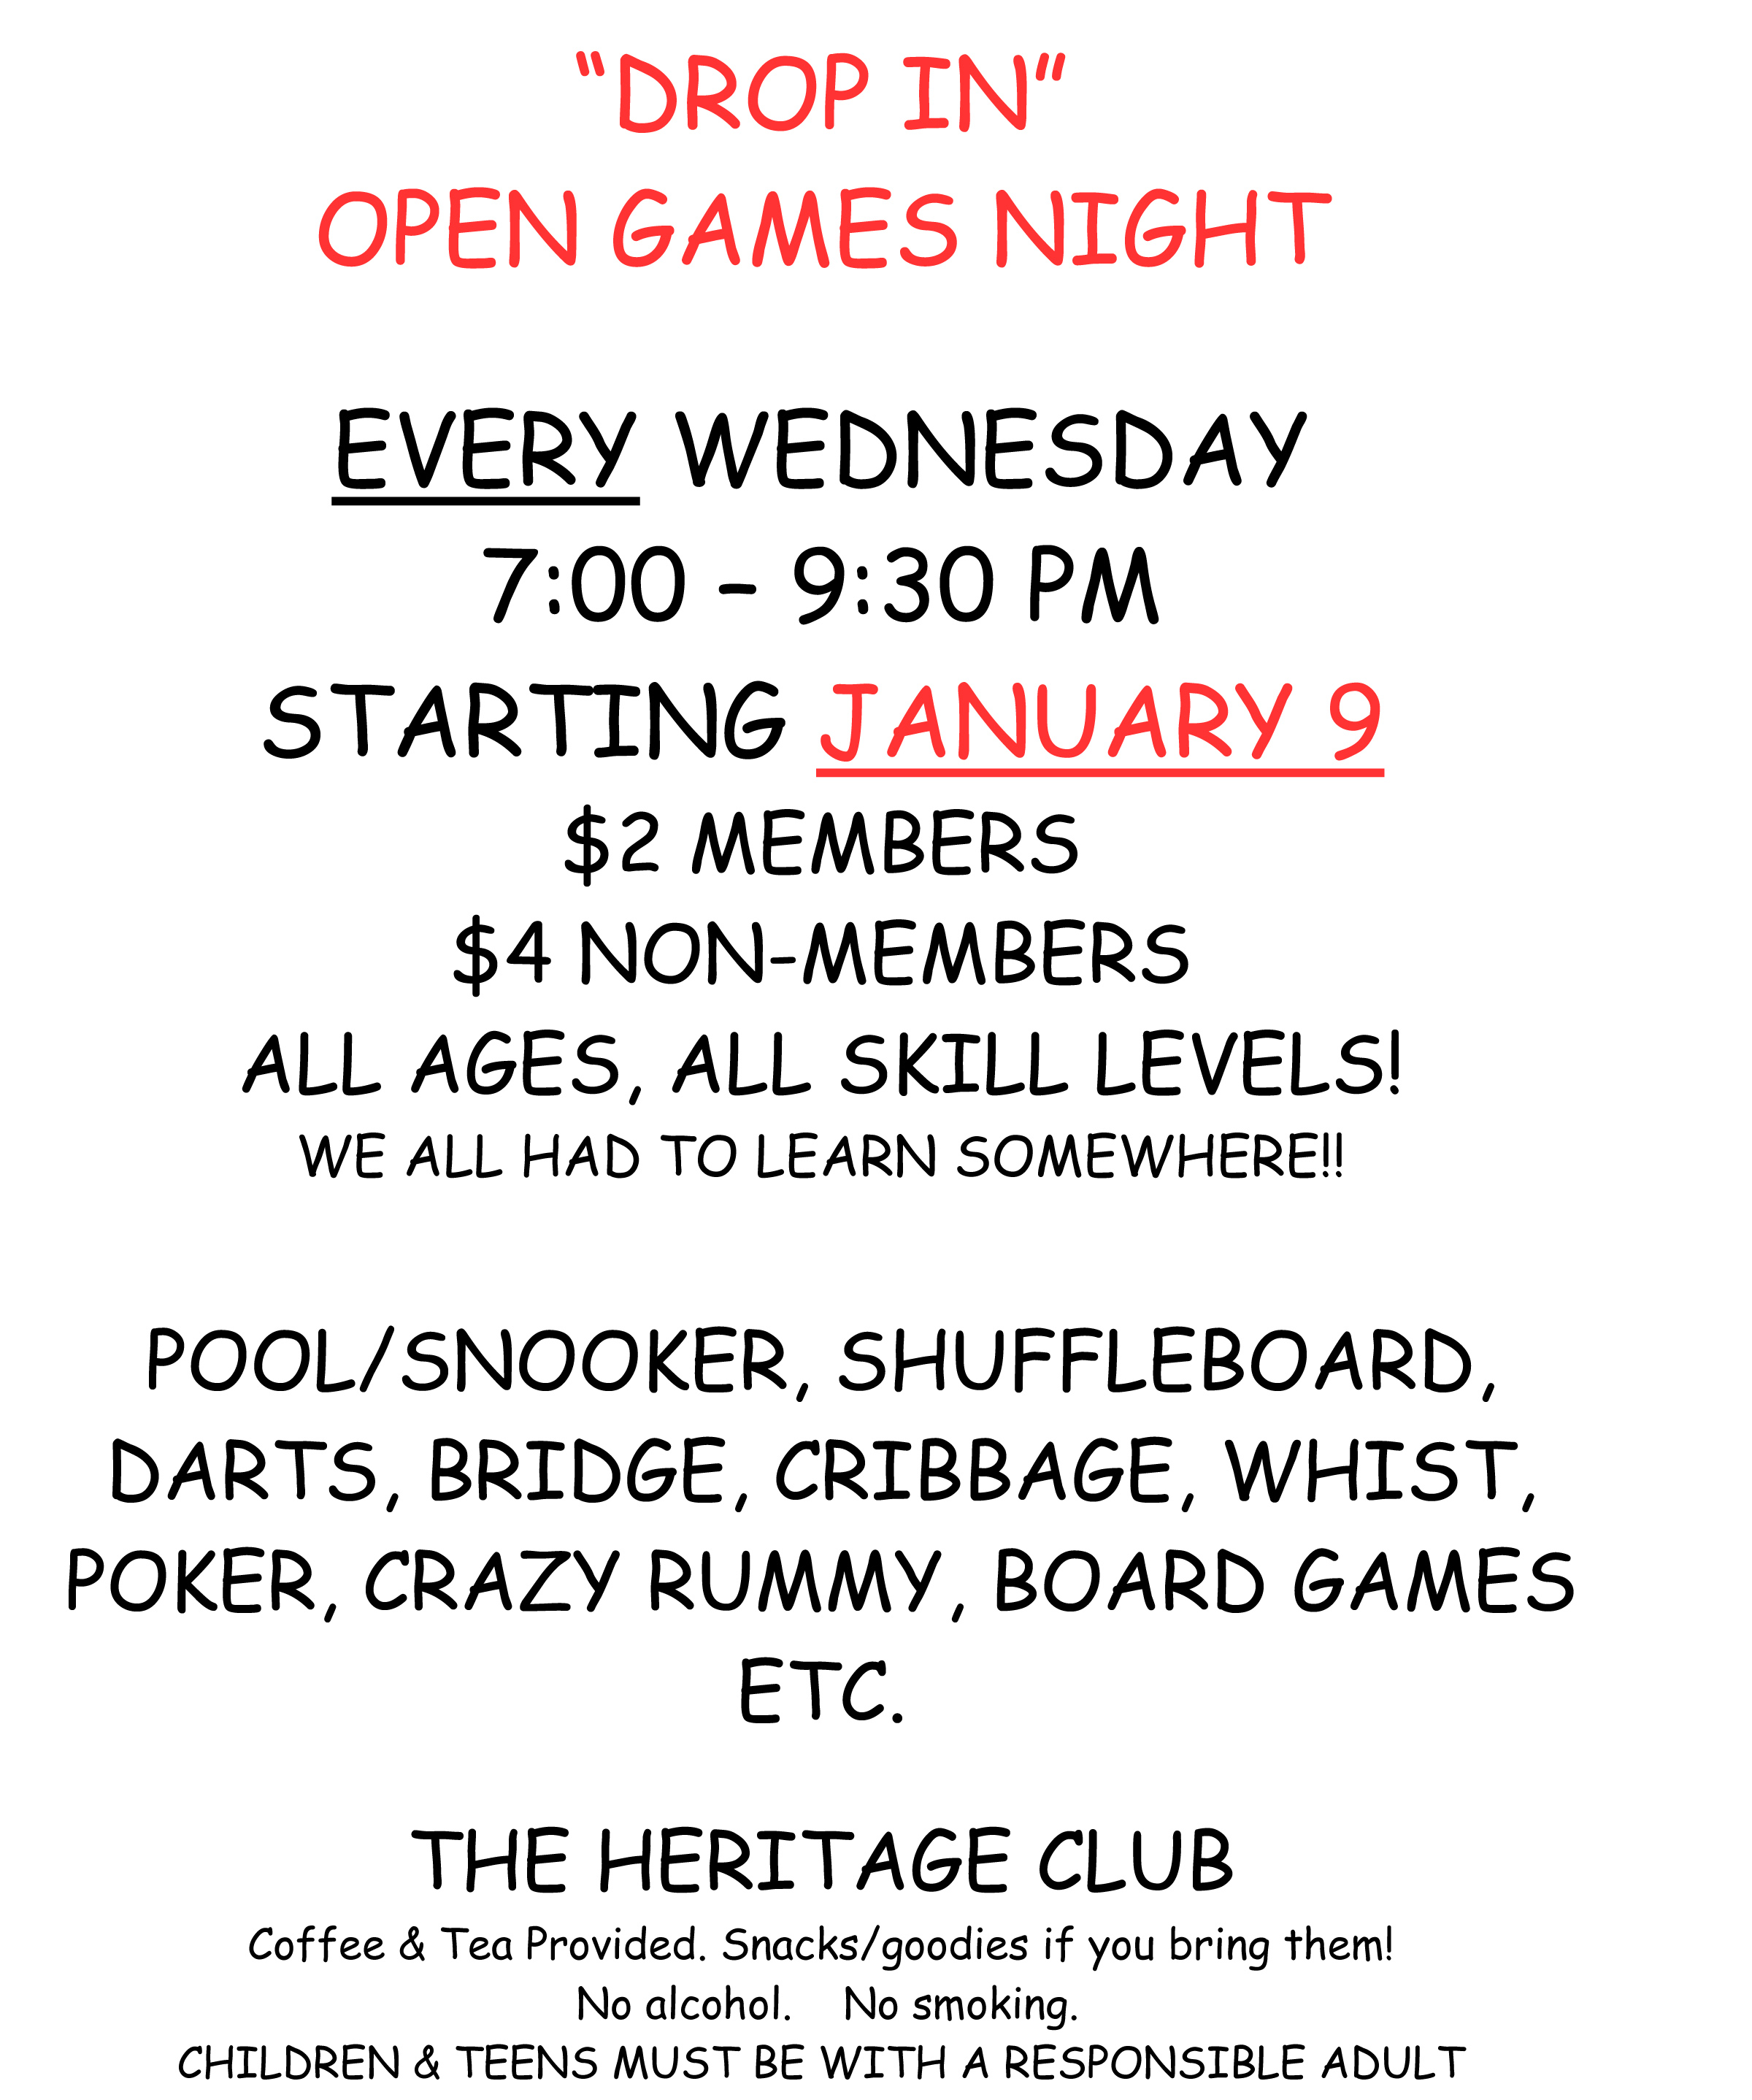 Heritage Club open games poster